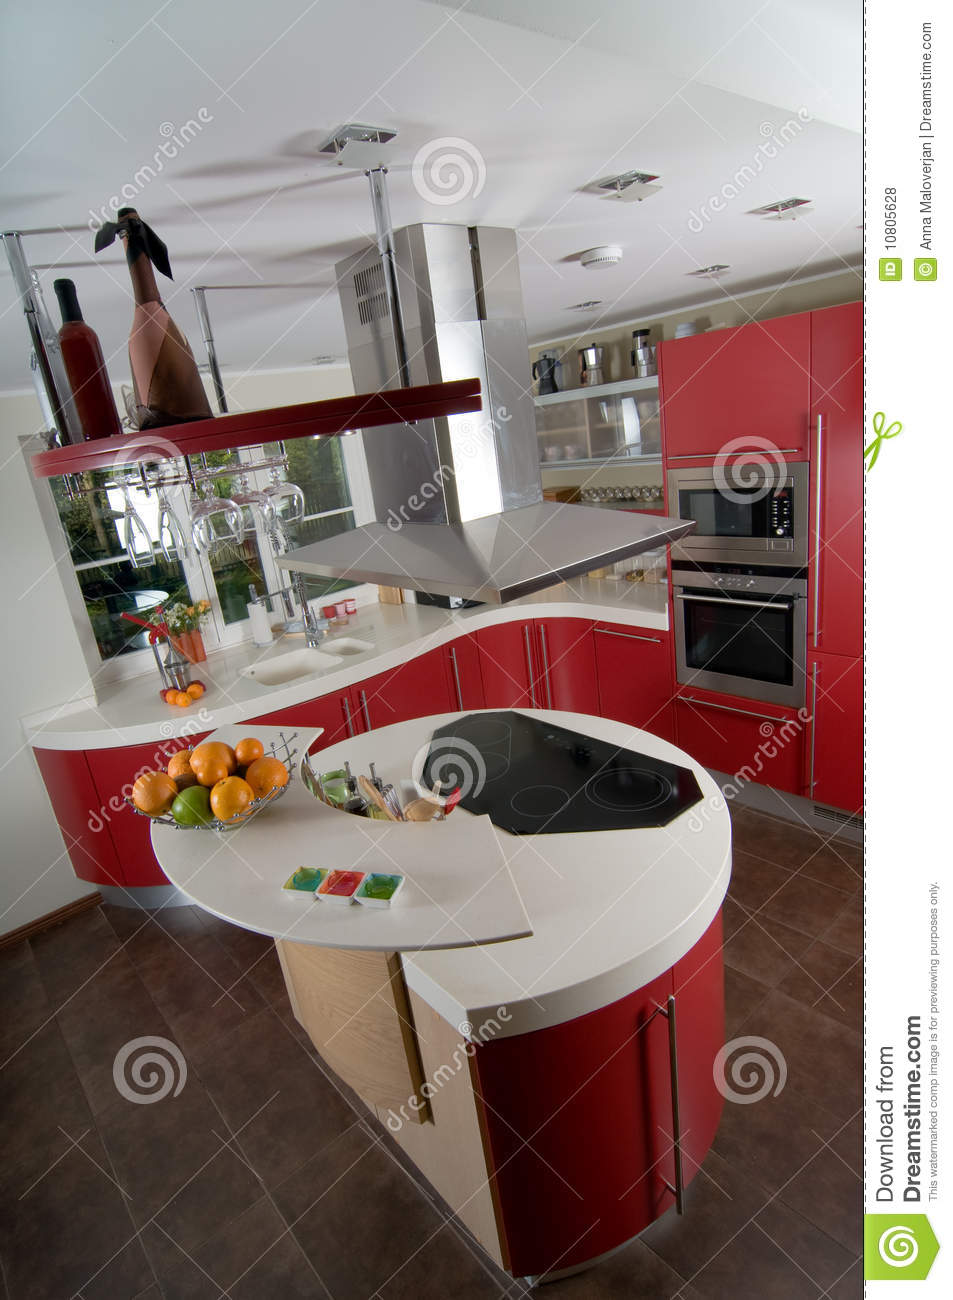 Cuisine Moderne Rouge Photo Stock Image Du Architecture